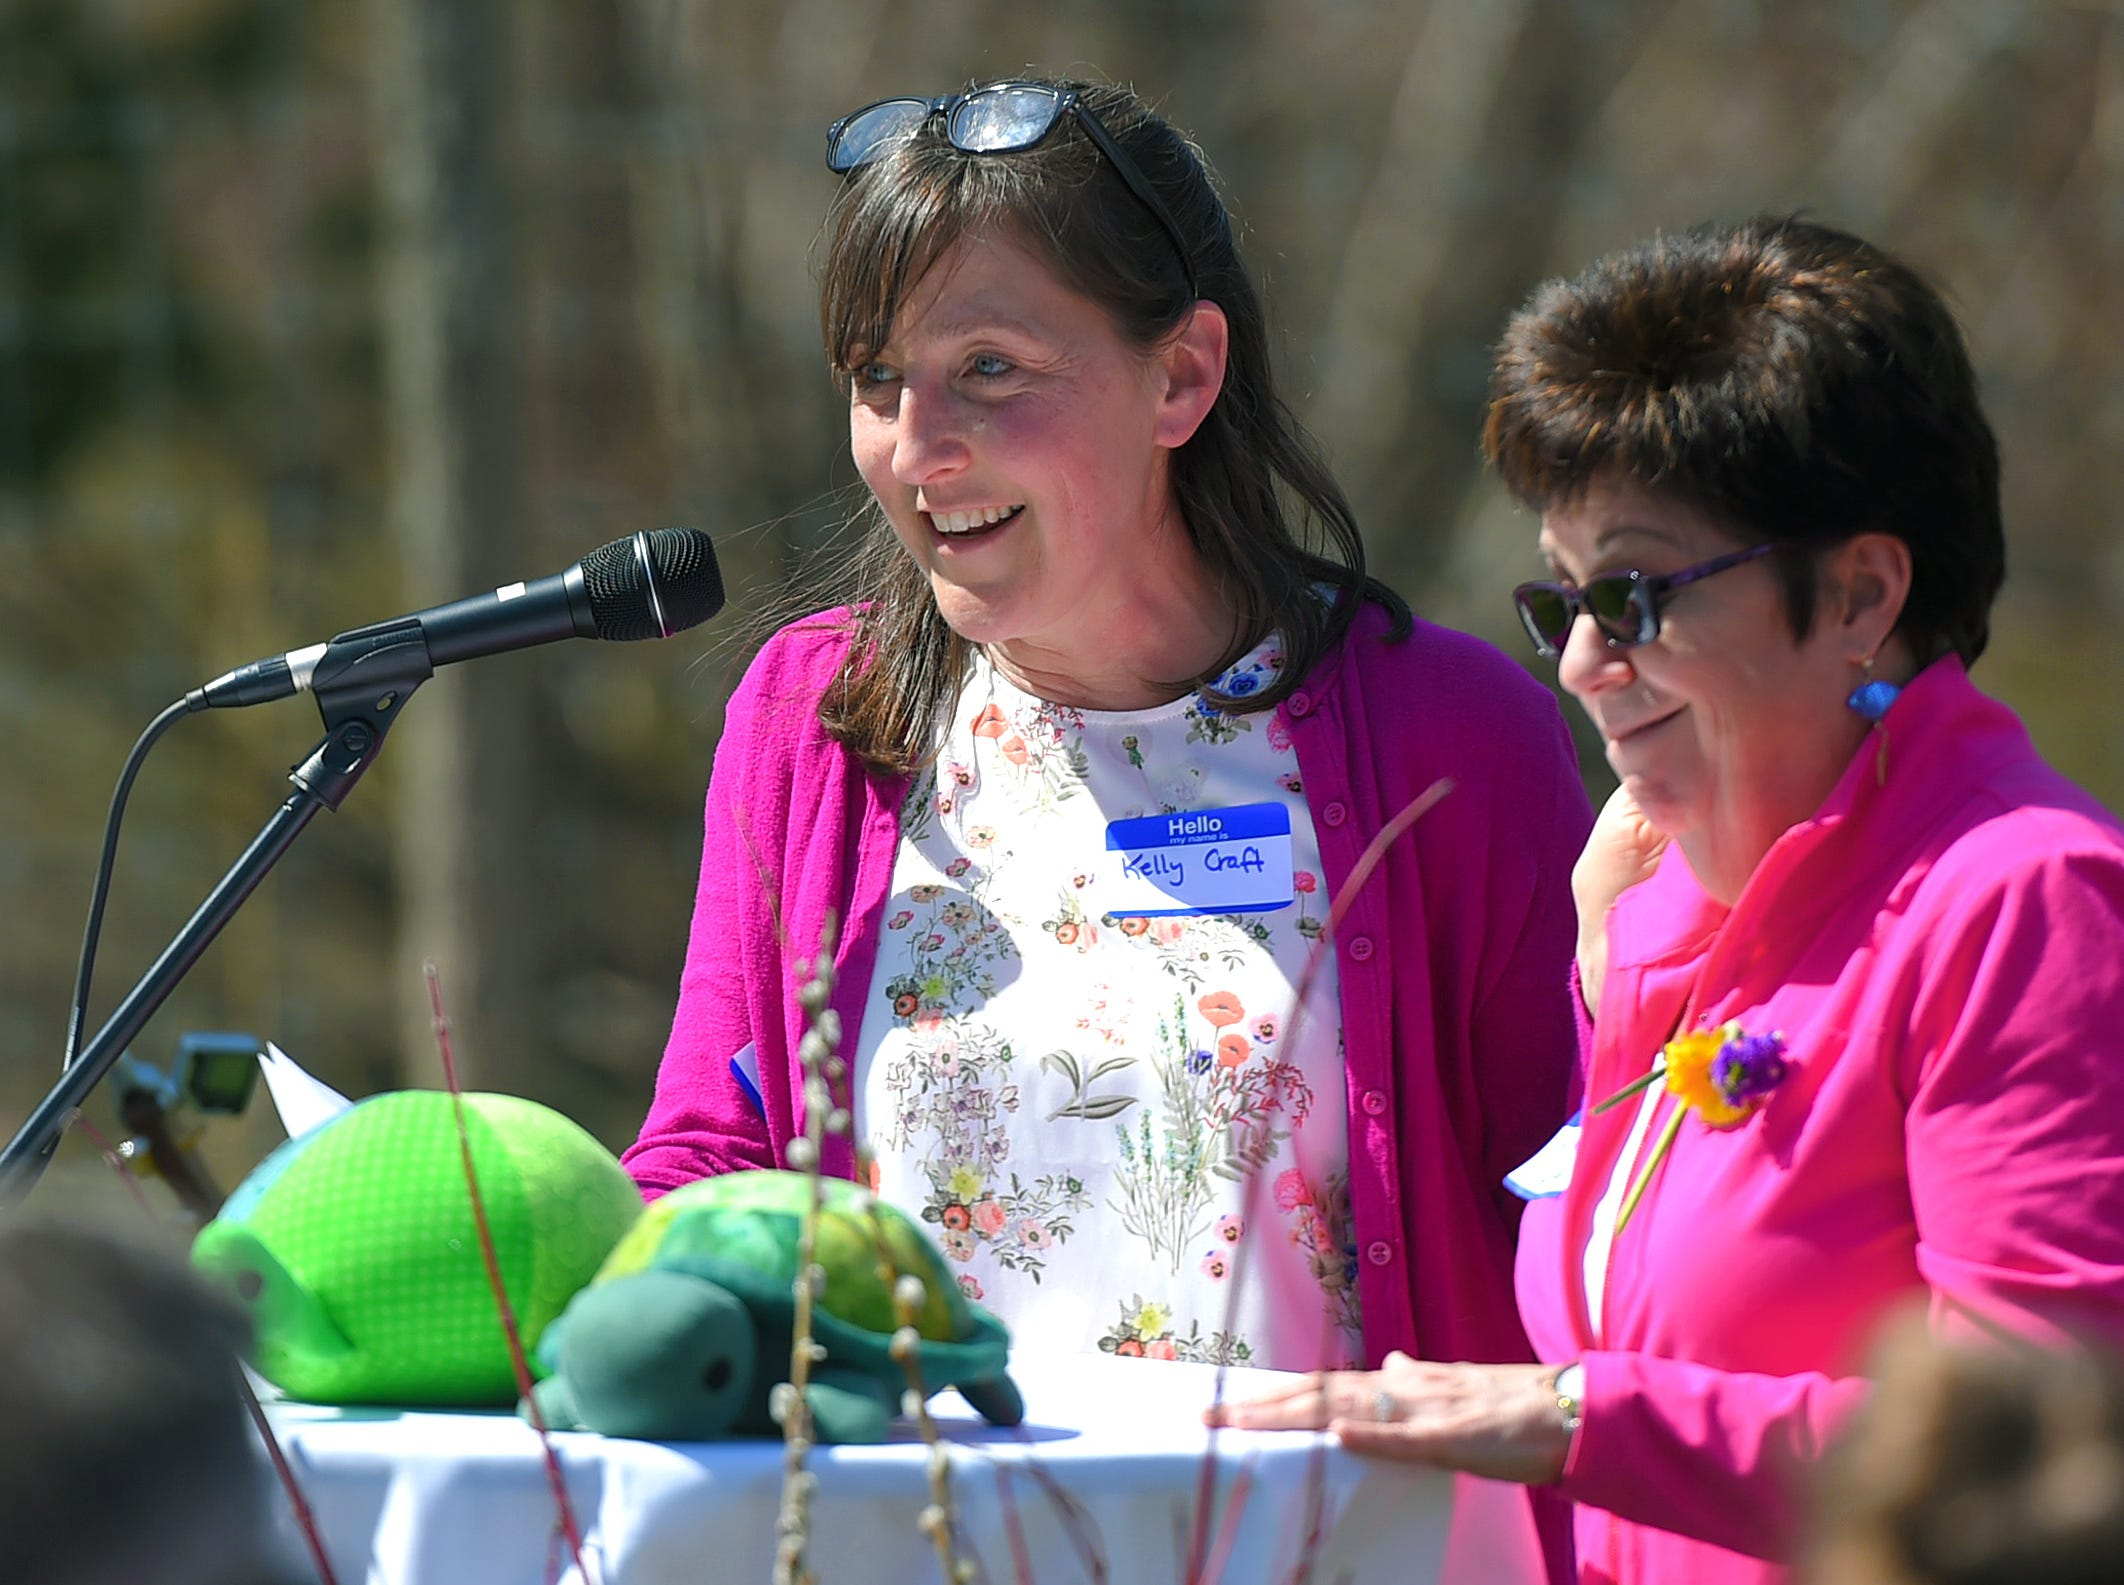 Kelly Craft, friend and colleague of Kathleen Downes, addresses the crowd at the celebration of life for Downes at Ithaca Children's Garden on April 17, 2019.